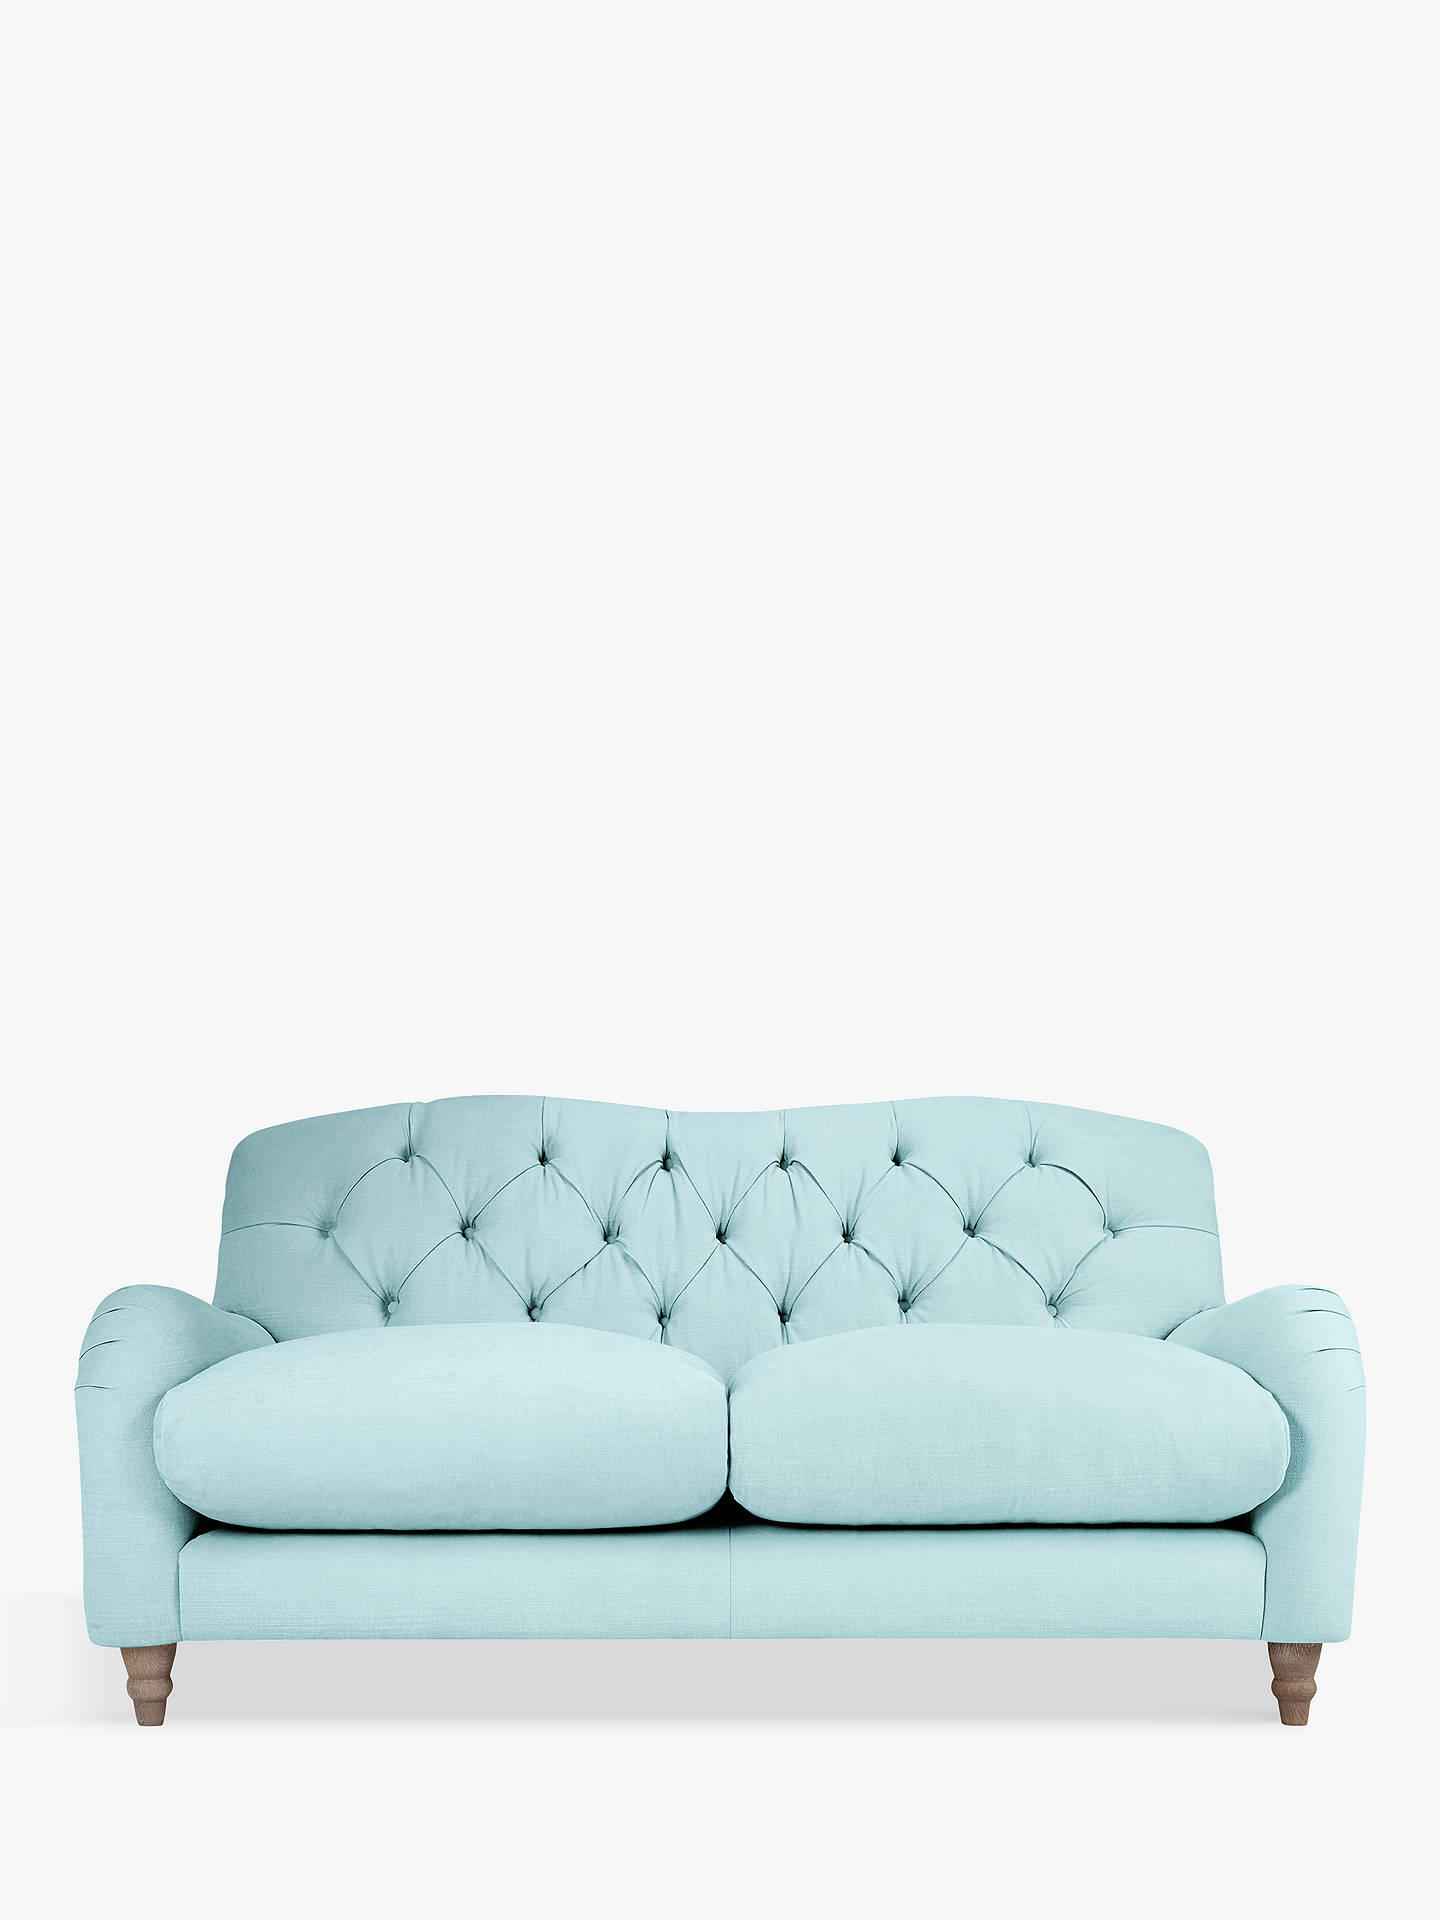 Buy Crumble Medium 2 Seater Sofa by Loaf at John Lewis, Clever Softie Powder Blue Online at johnlewis.com